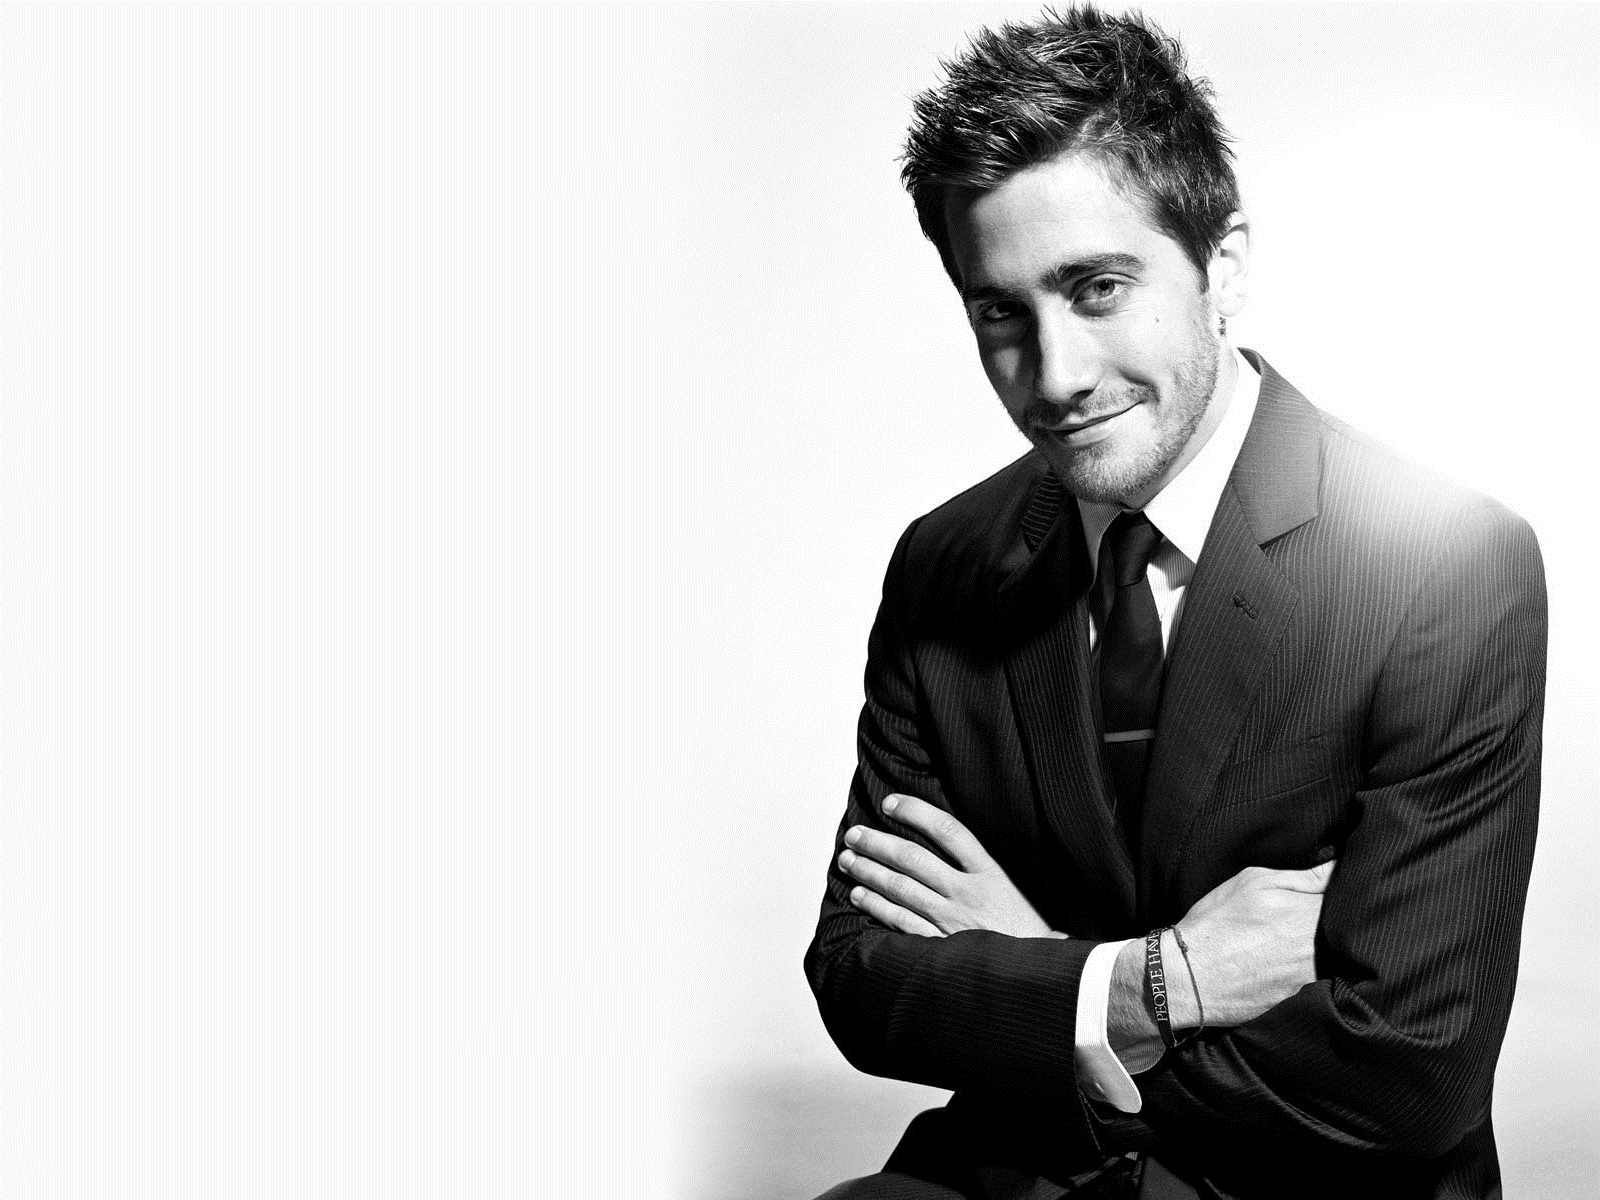 Jake Gyllenhaal Wallpapers High Resolution and Quality Download 1600x1200